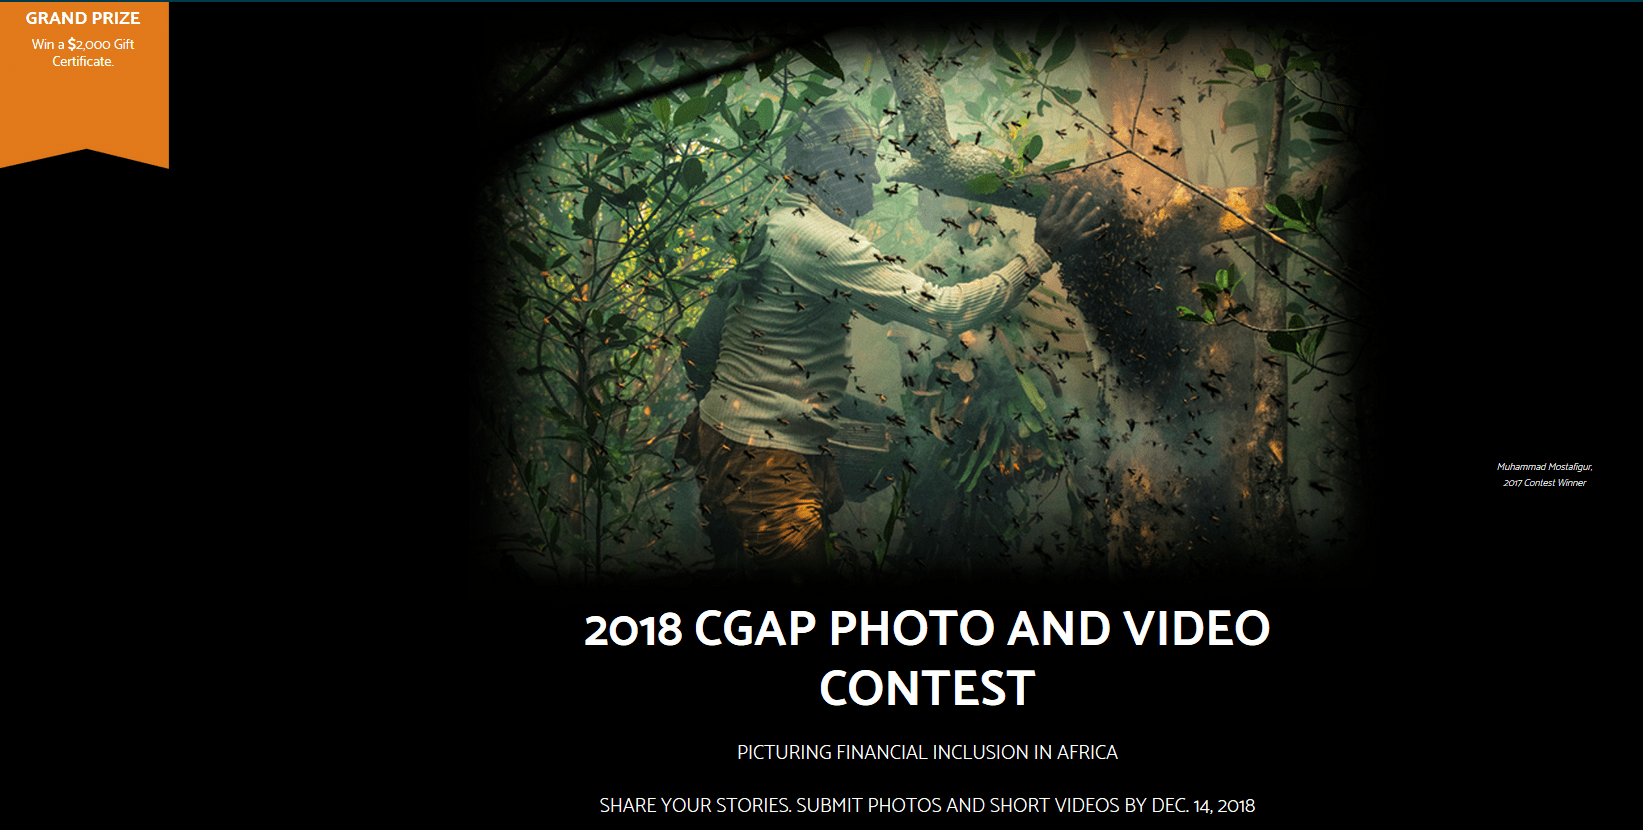 Consultative Group to Help the Poor (CGAP) 13 th yearly Image and Video Contest 2018: Picturing Financial Addition in Africa (Win a 2,000 Present Certificate)